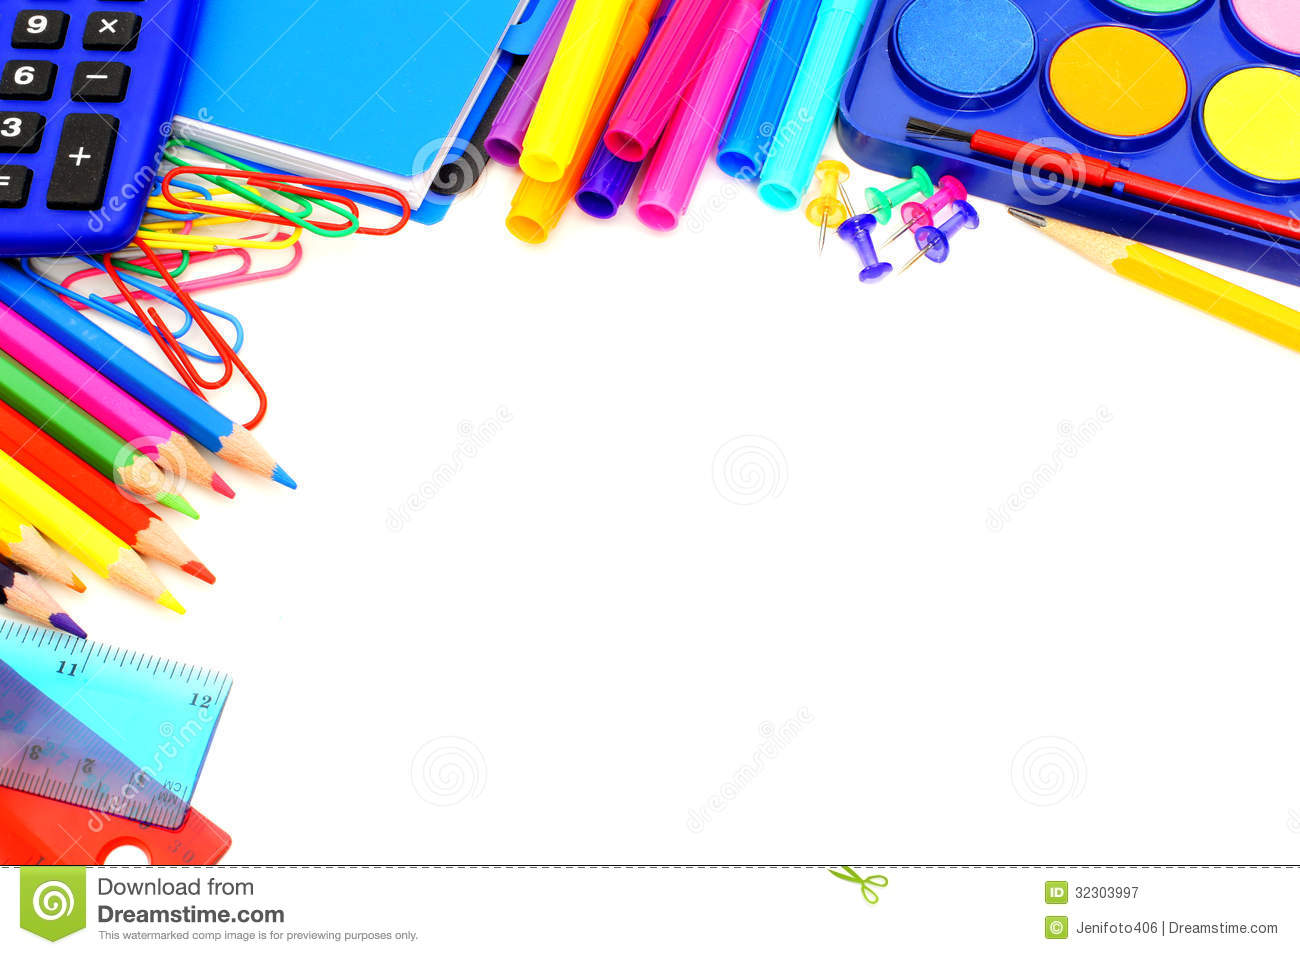 School Supplies Clipart - Home Design Jobs